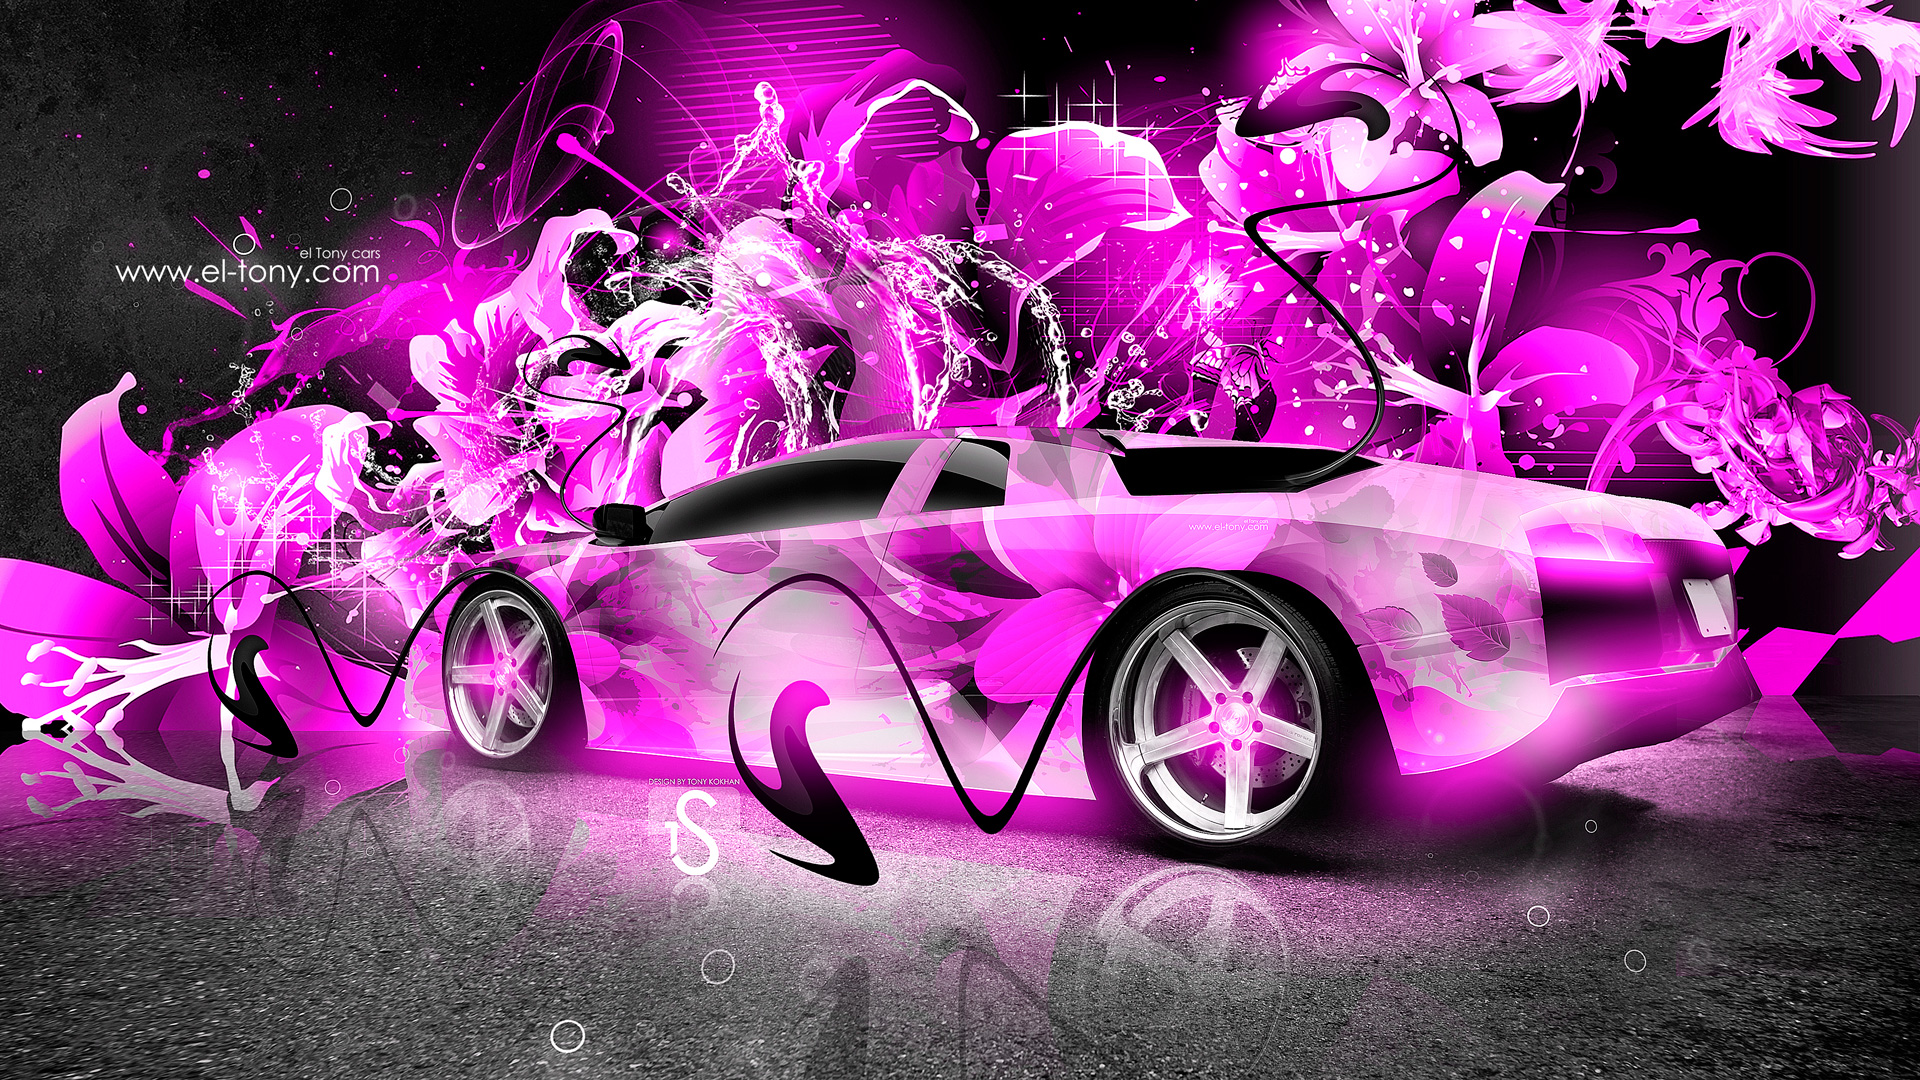 Lamborghini Murcielago Super Abstract Car 2013 | el Tony